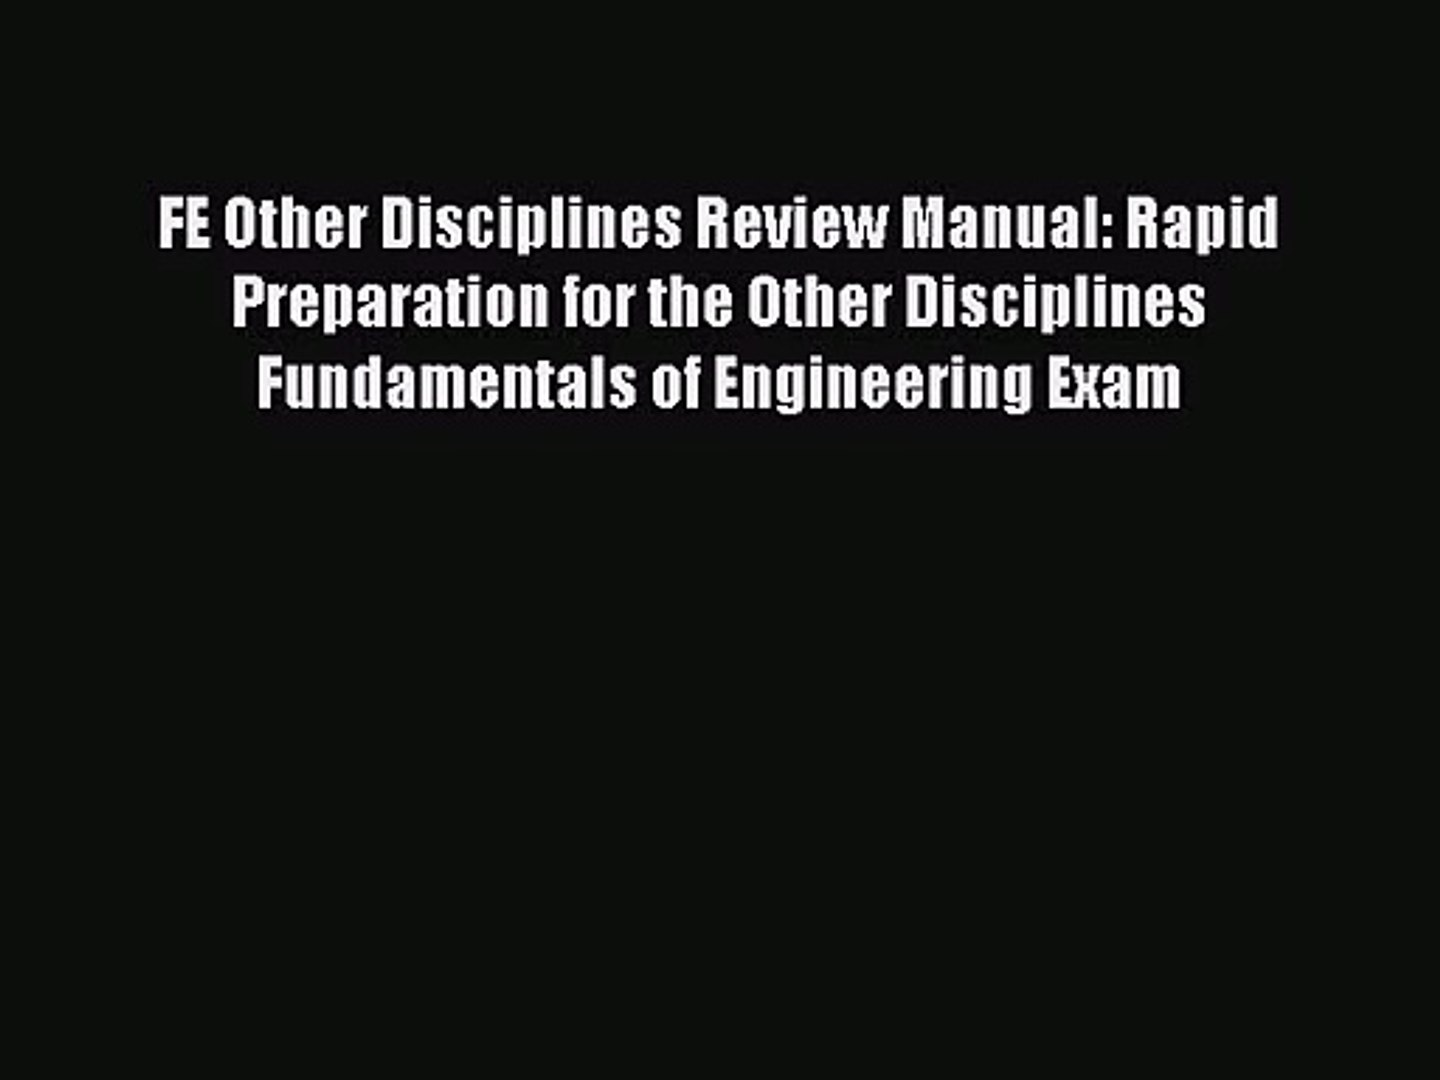 FE Other Disciplines Review Manual: Rapid Preparation for the Other Disciplines Fundamentals